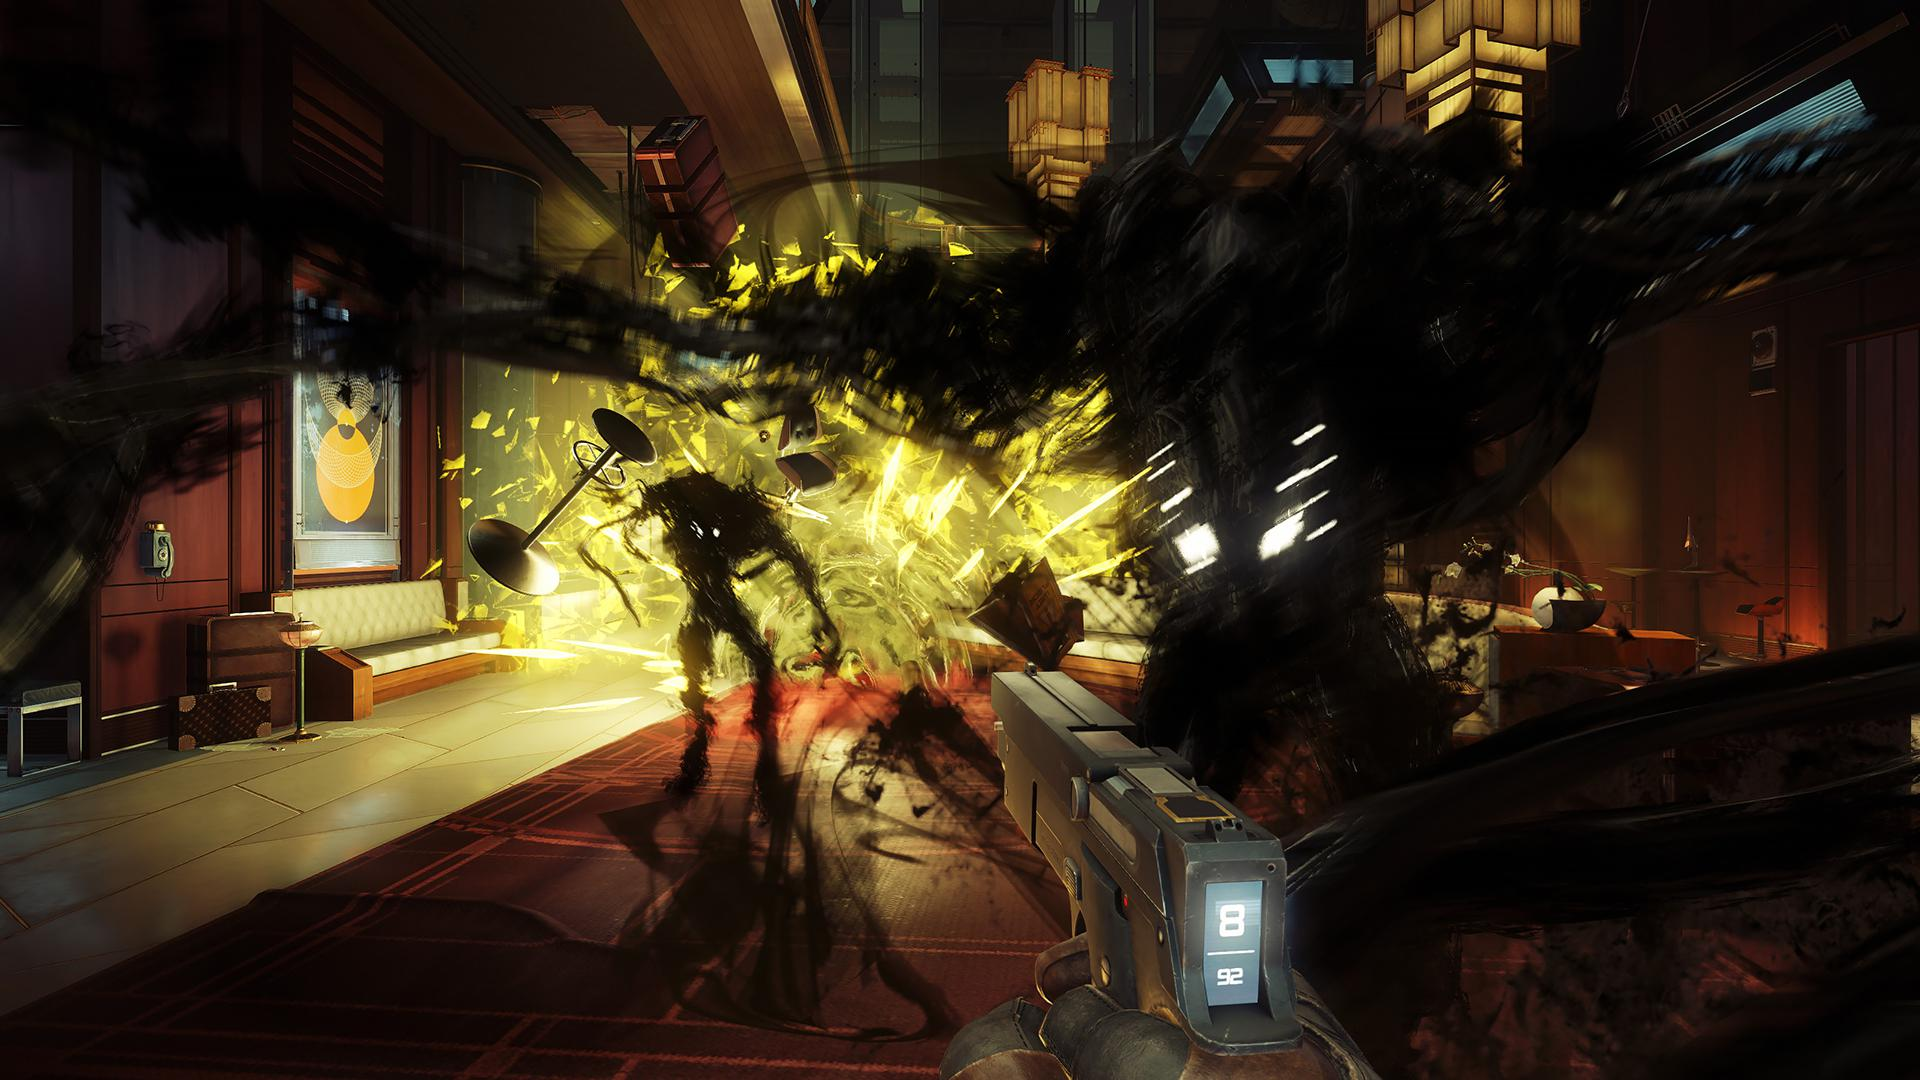 Expect plenty of action and puzzle solving as you explore Talos 1